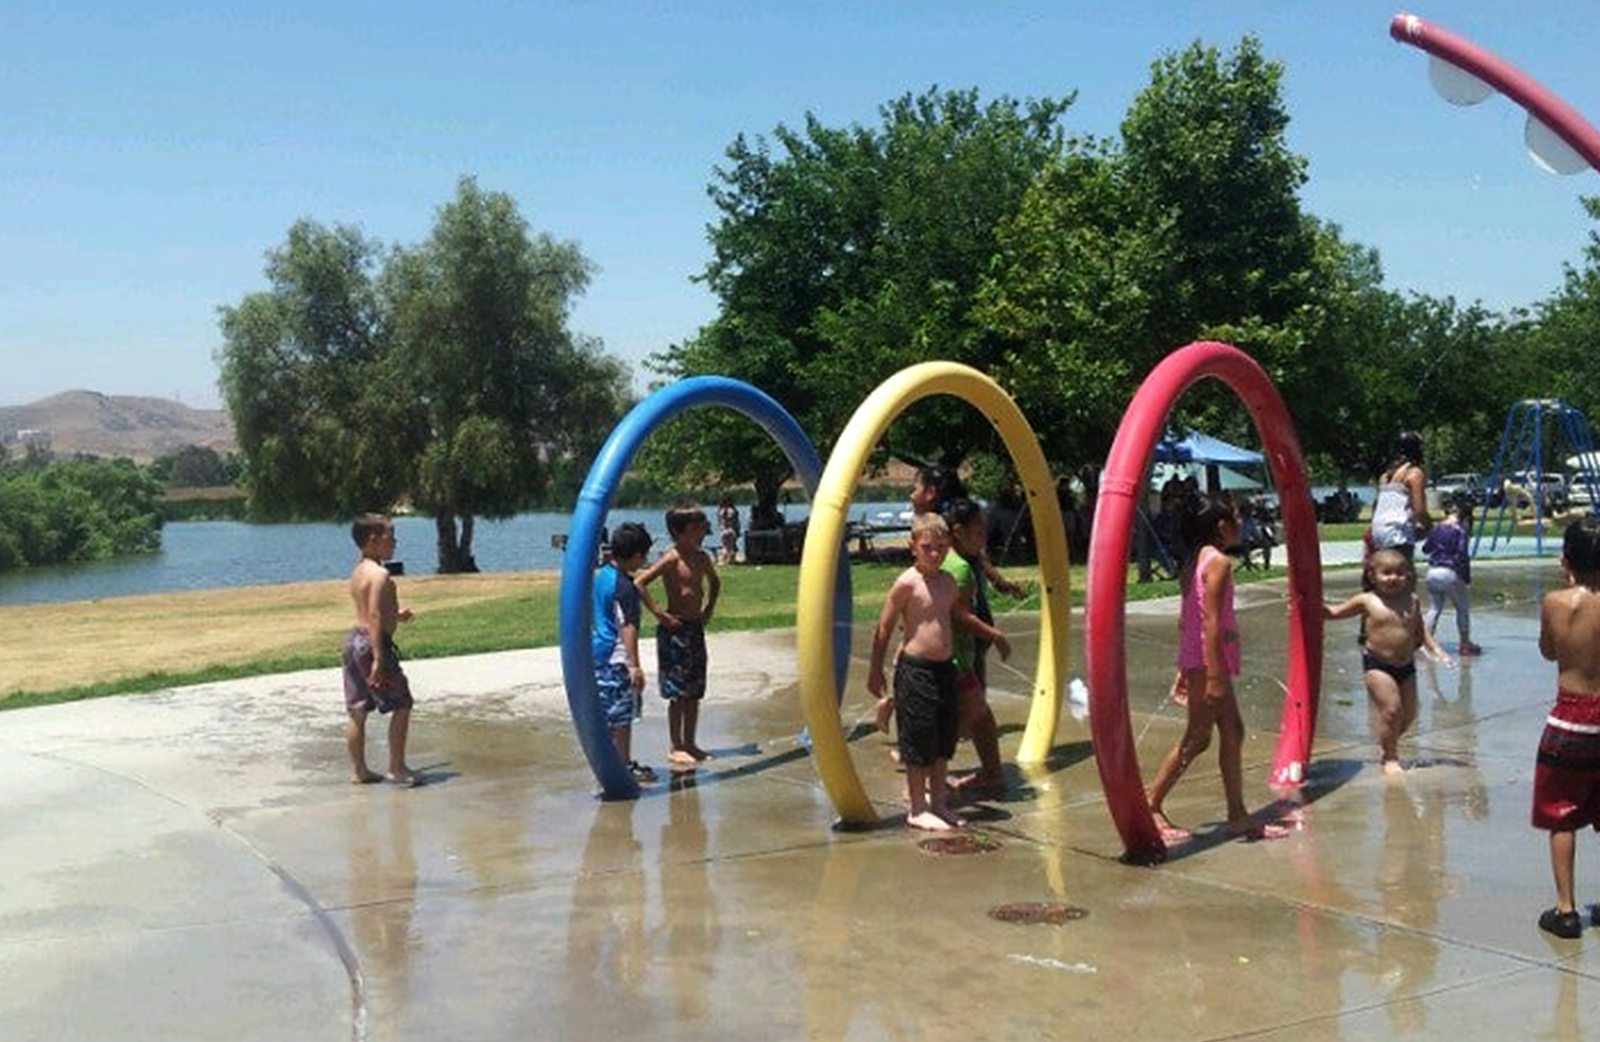 Childen run and play at Prado splash pad.